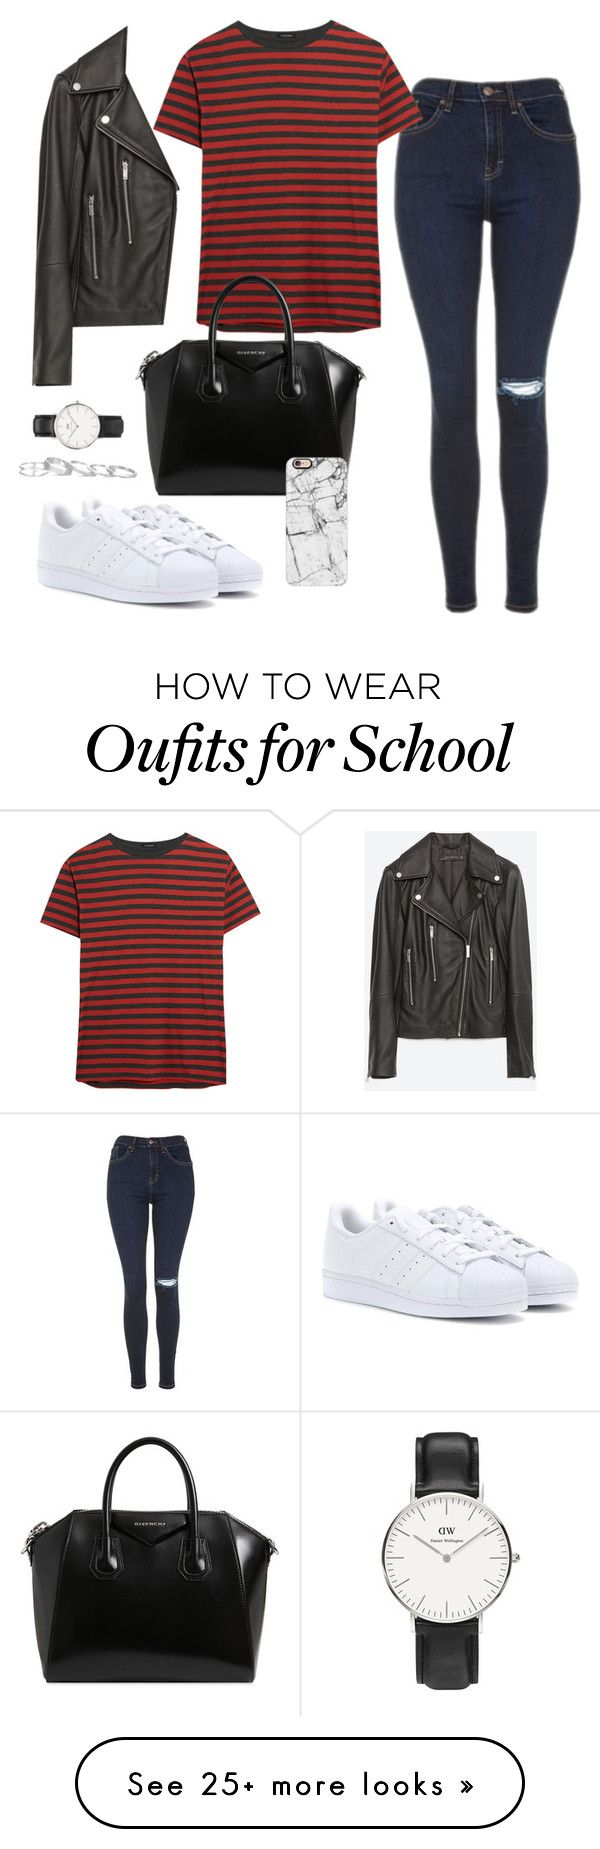 """Adidas superstar - 7 #School"" by inlovewithtay on Polyvore featuring Zara, Topshop, R13, Daniel Wellington, Givenchy, adidas, Casetify, Kendra Scott, BackToSchool and superstar"